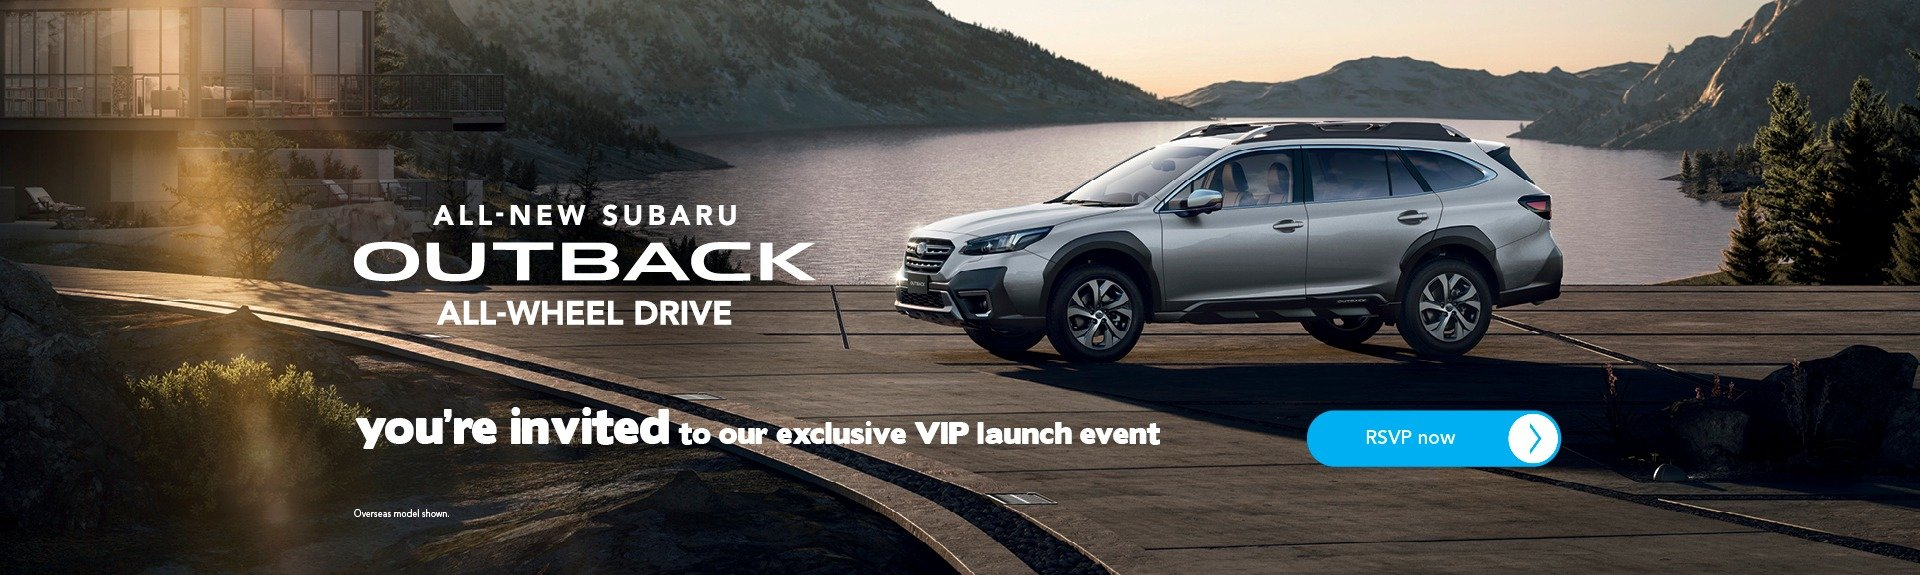 Outback Customer Event